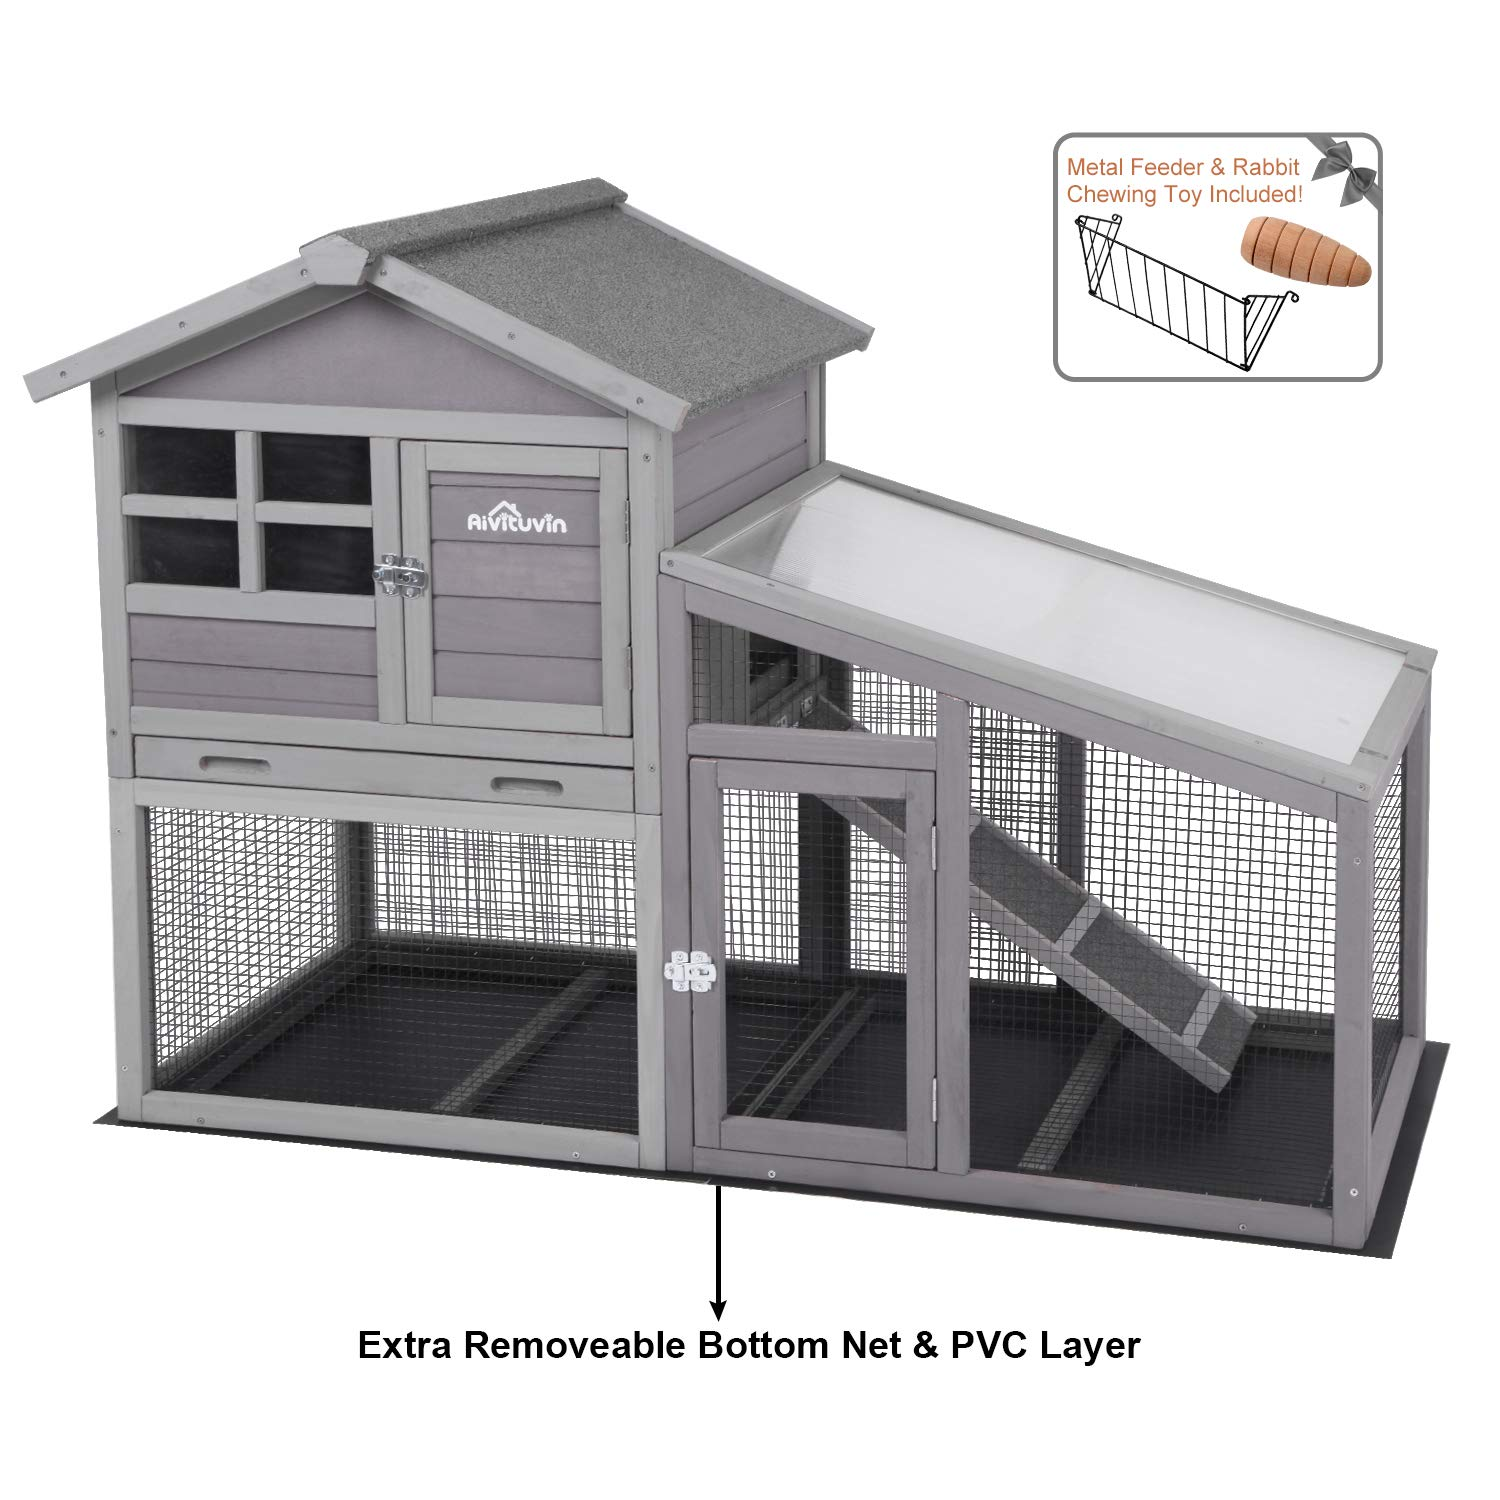 Aivituvin Chicken Coop Indoor and Outdoor,Rabbit Hutch with Removable Bottom Wire Mesh & PVC Layer,Deeper No LeakageTray,Wooden Hen House with Nesting Box,UV Panel